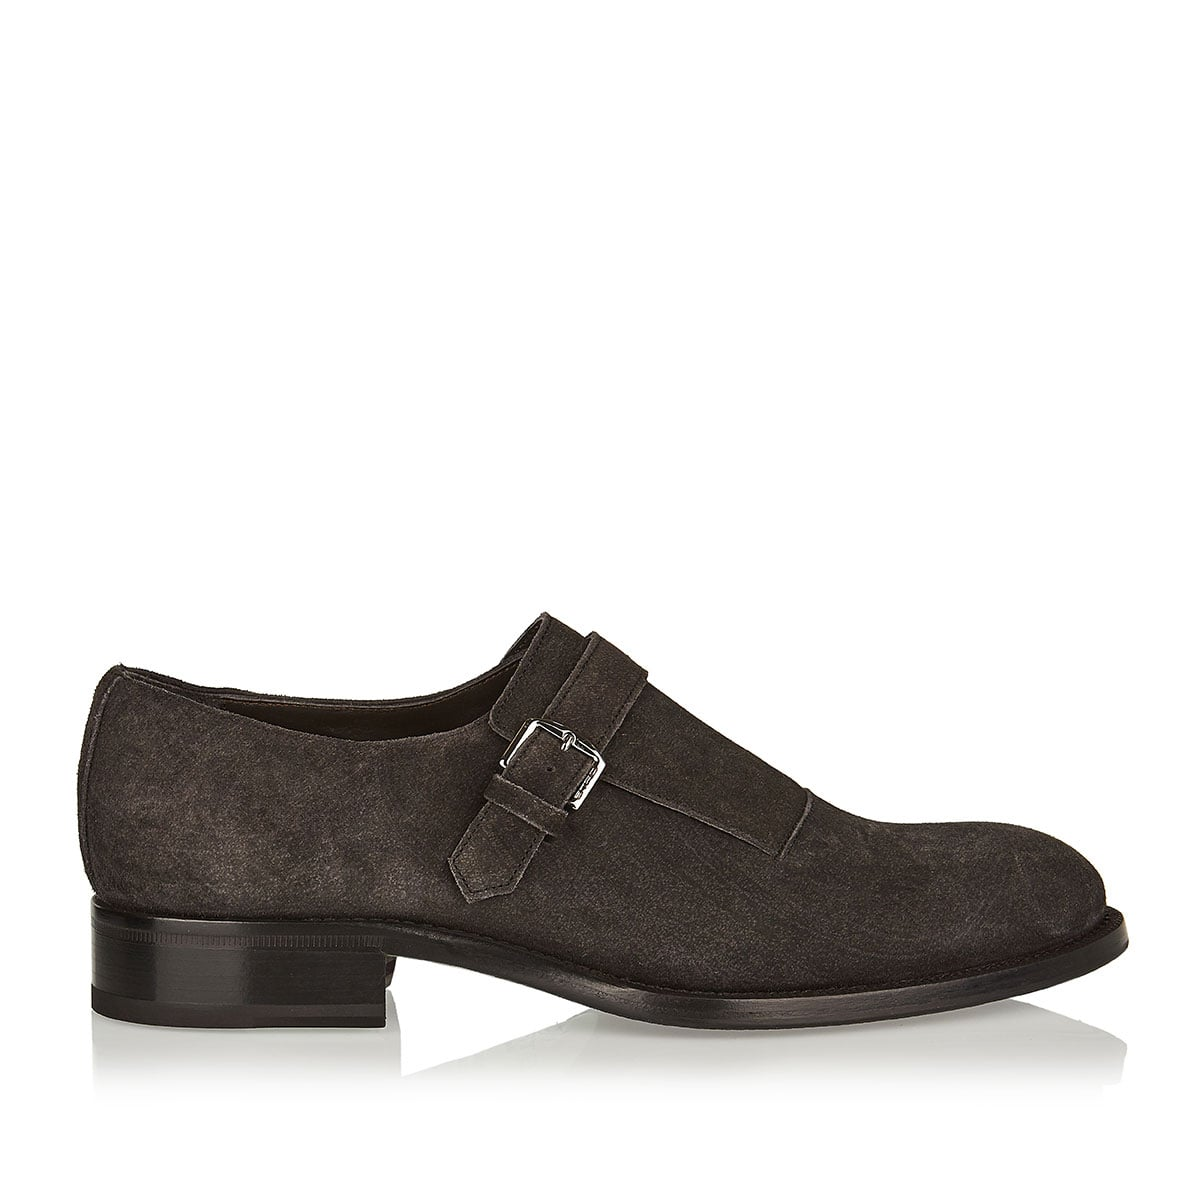 Paisley print suede shoes